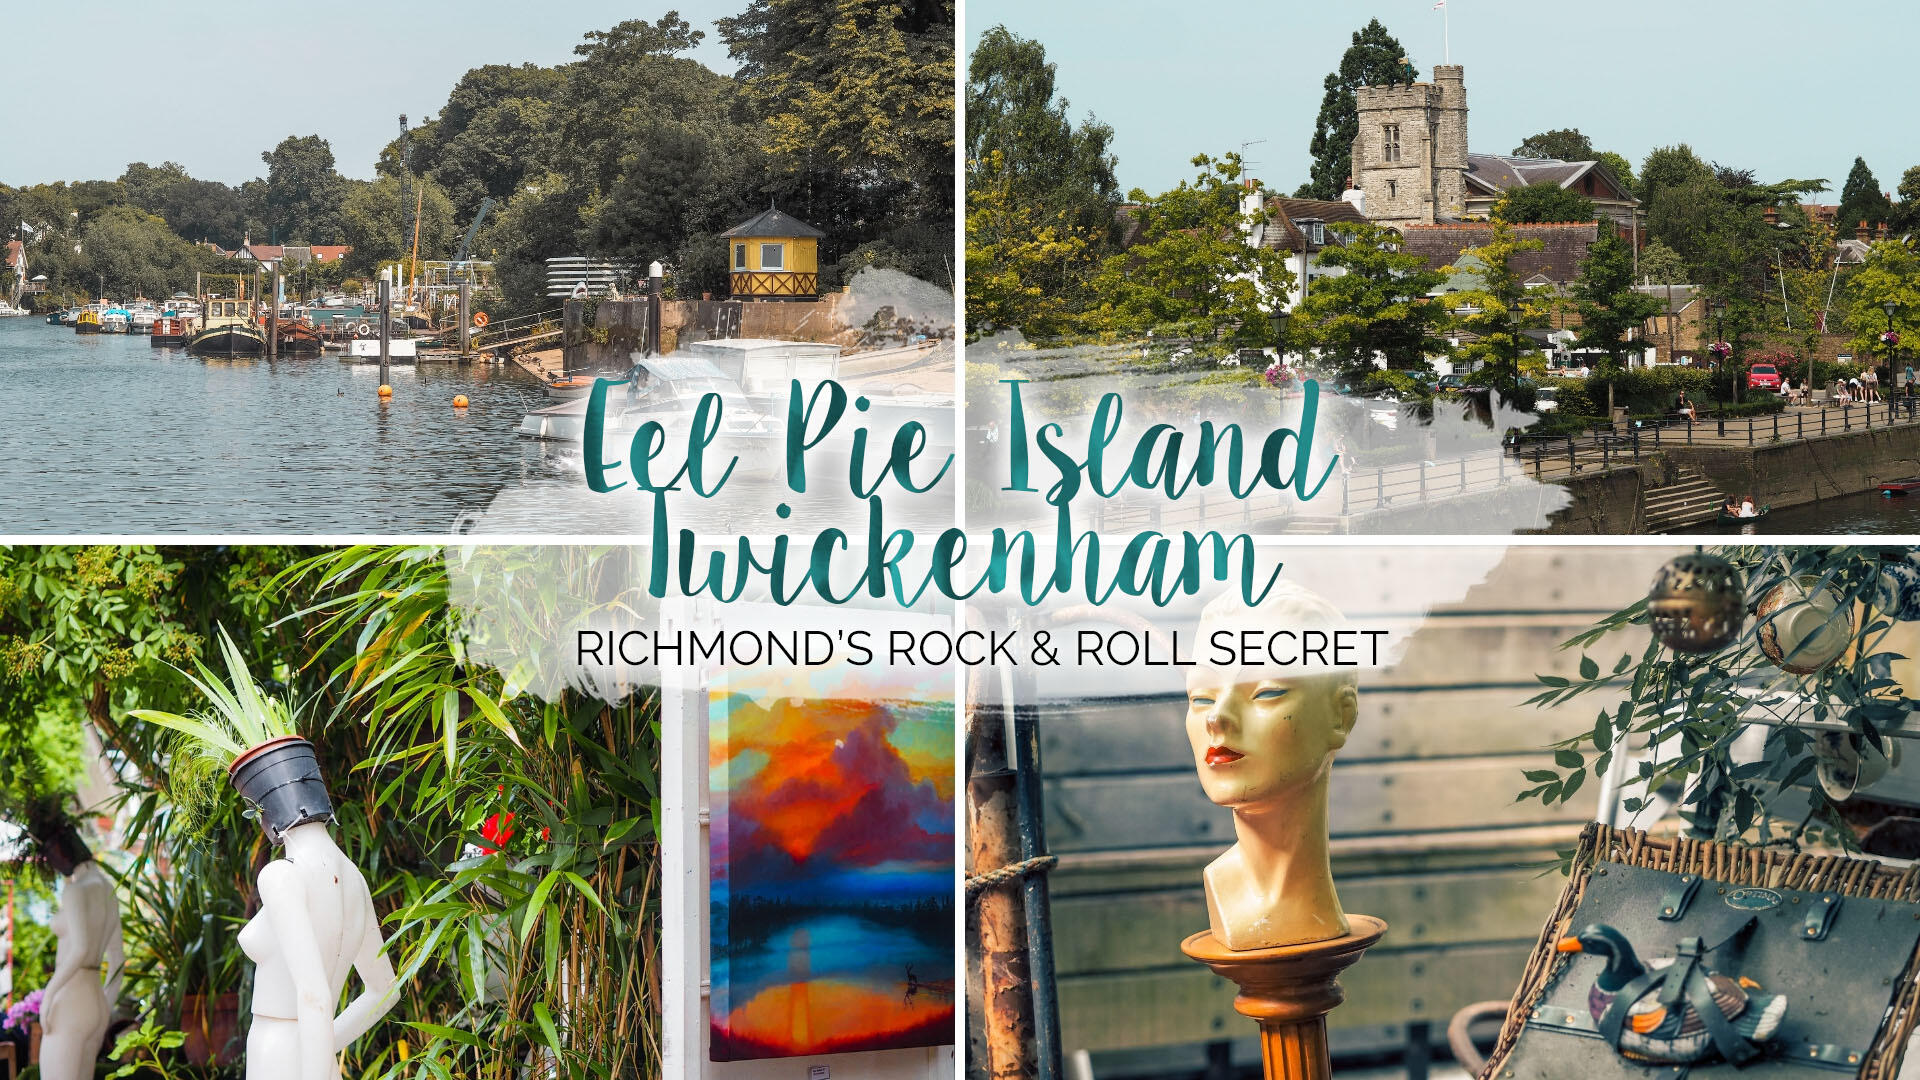 Eel Pie Island - Twickenham's Rock & Roll Secret || London